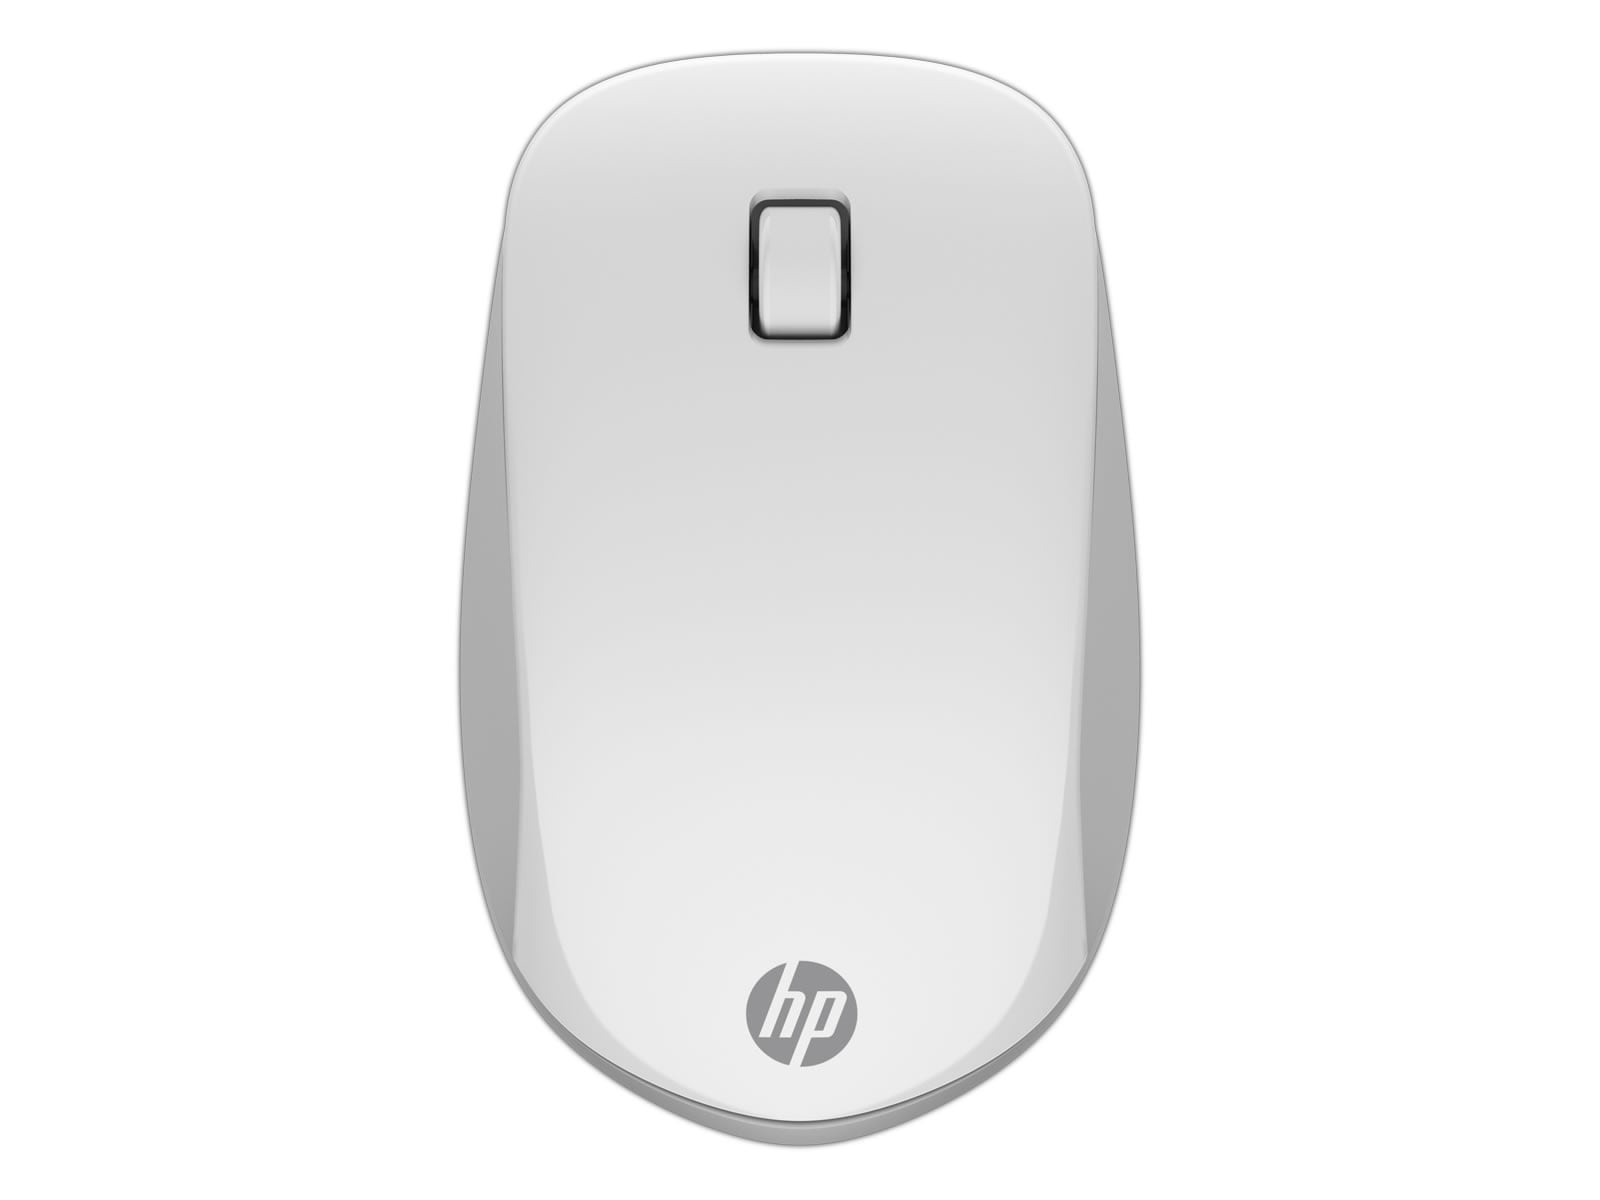 HP Wireless Mouse Z5000